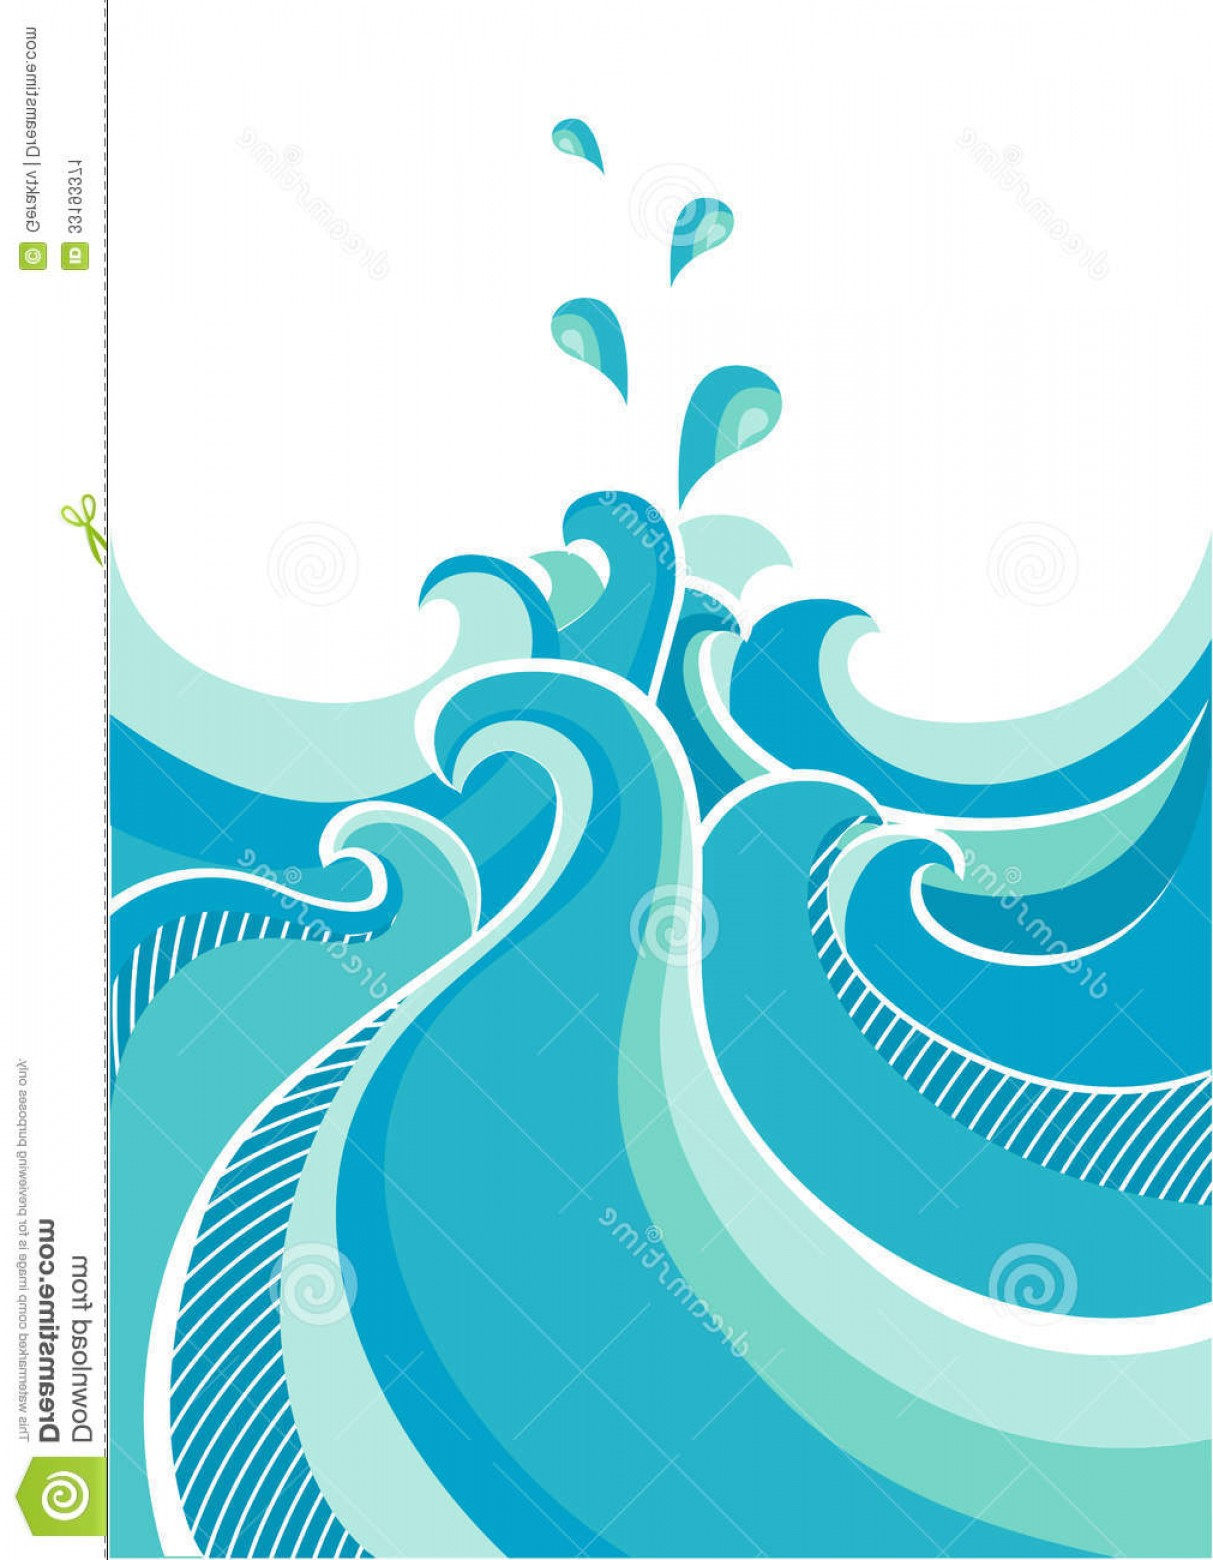 Ocean Wave Vector Illustration: Stock Image Abstract Water Waves Vector Illustration Isolated Dropes White Design Image